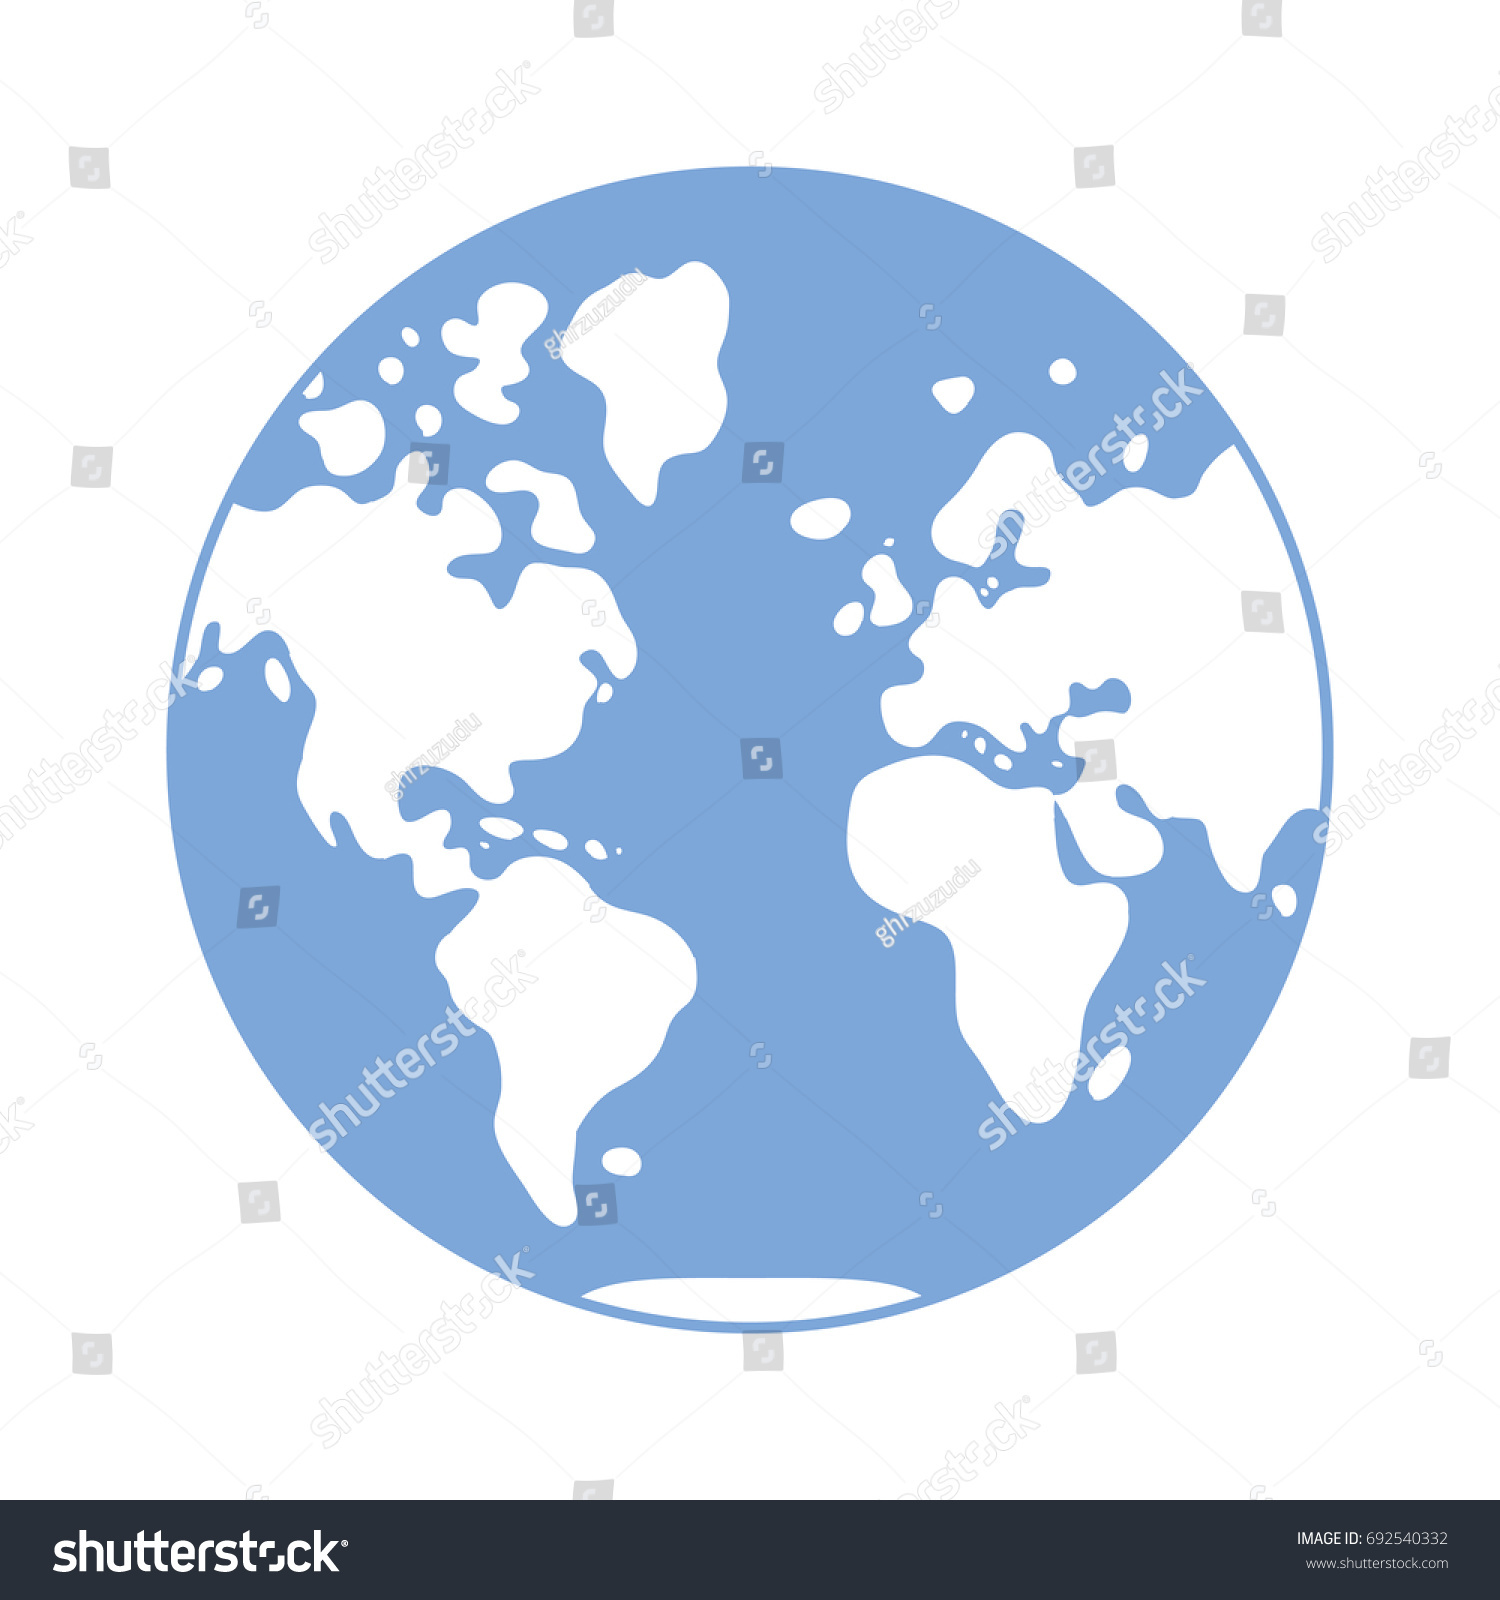 World map vector icon globe western vectores en stock 692540332 world map vector icon globe western hemisphere gumiabroncs Choice Image